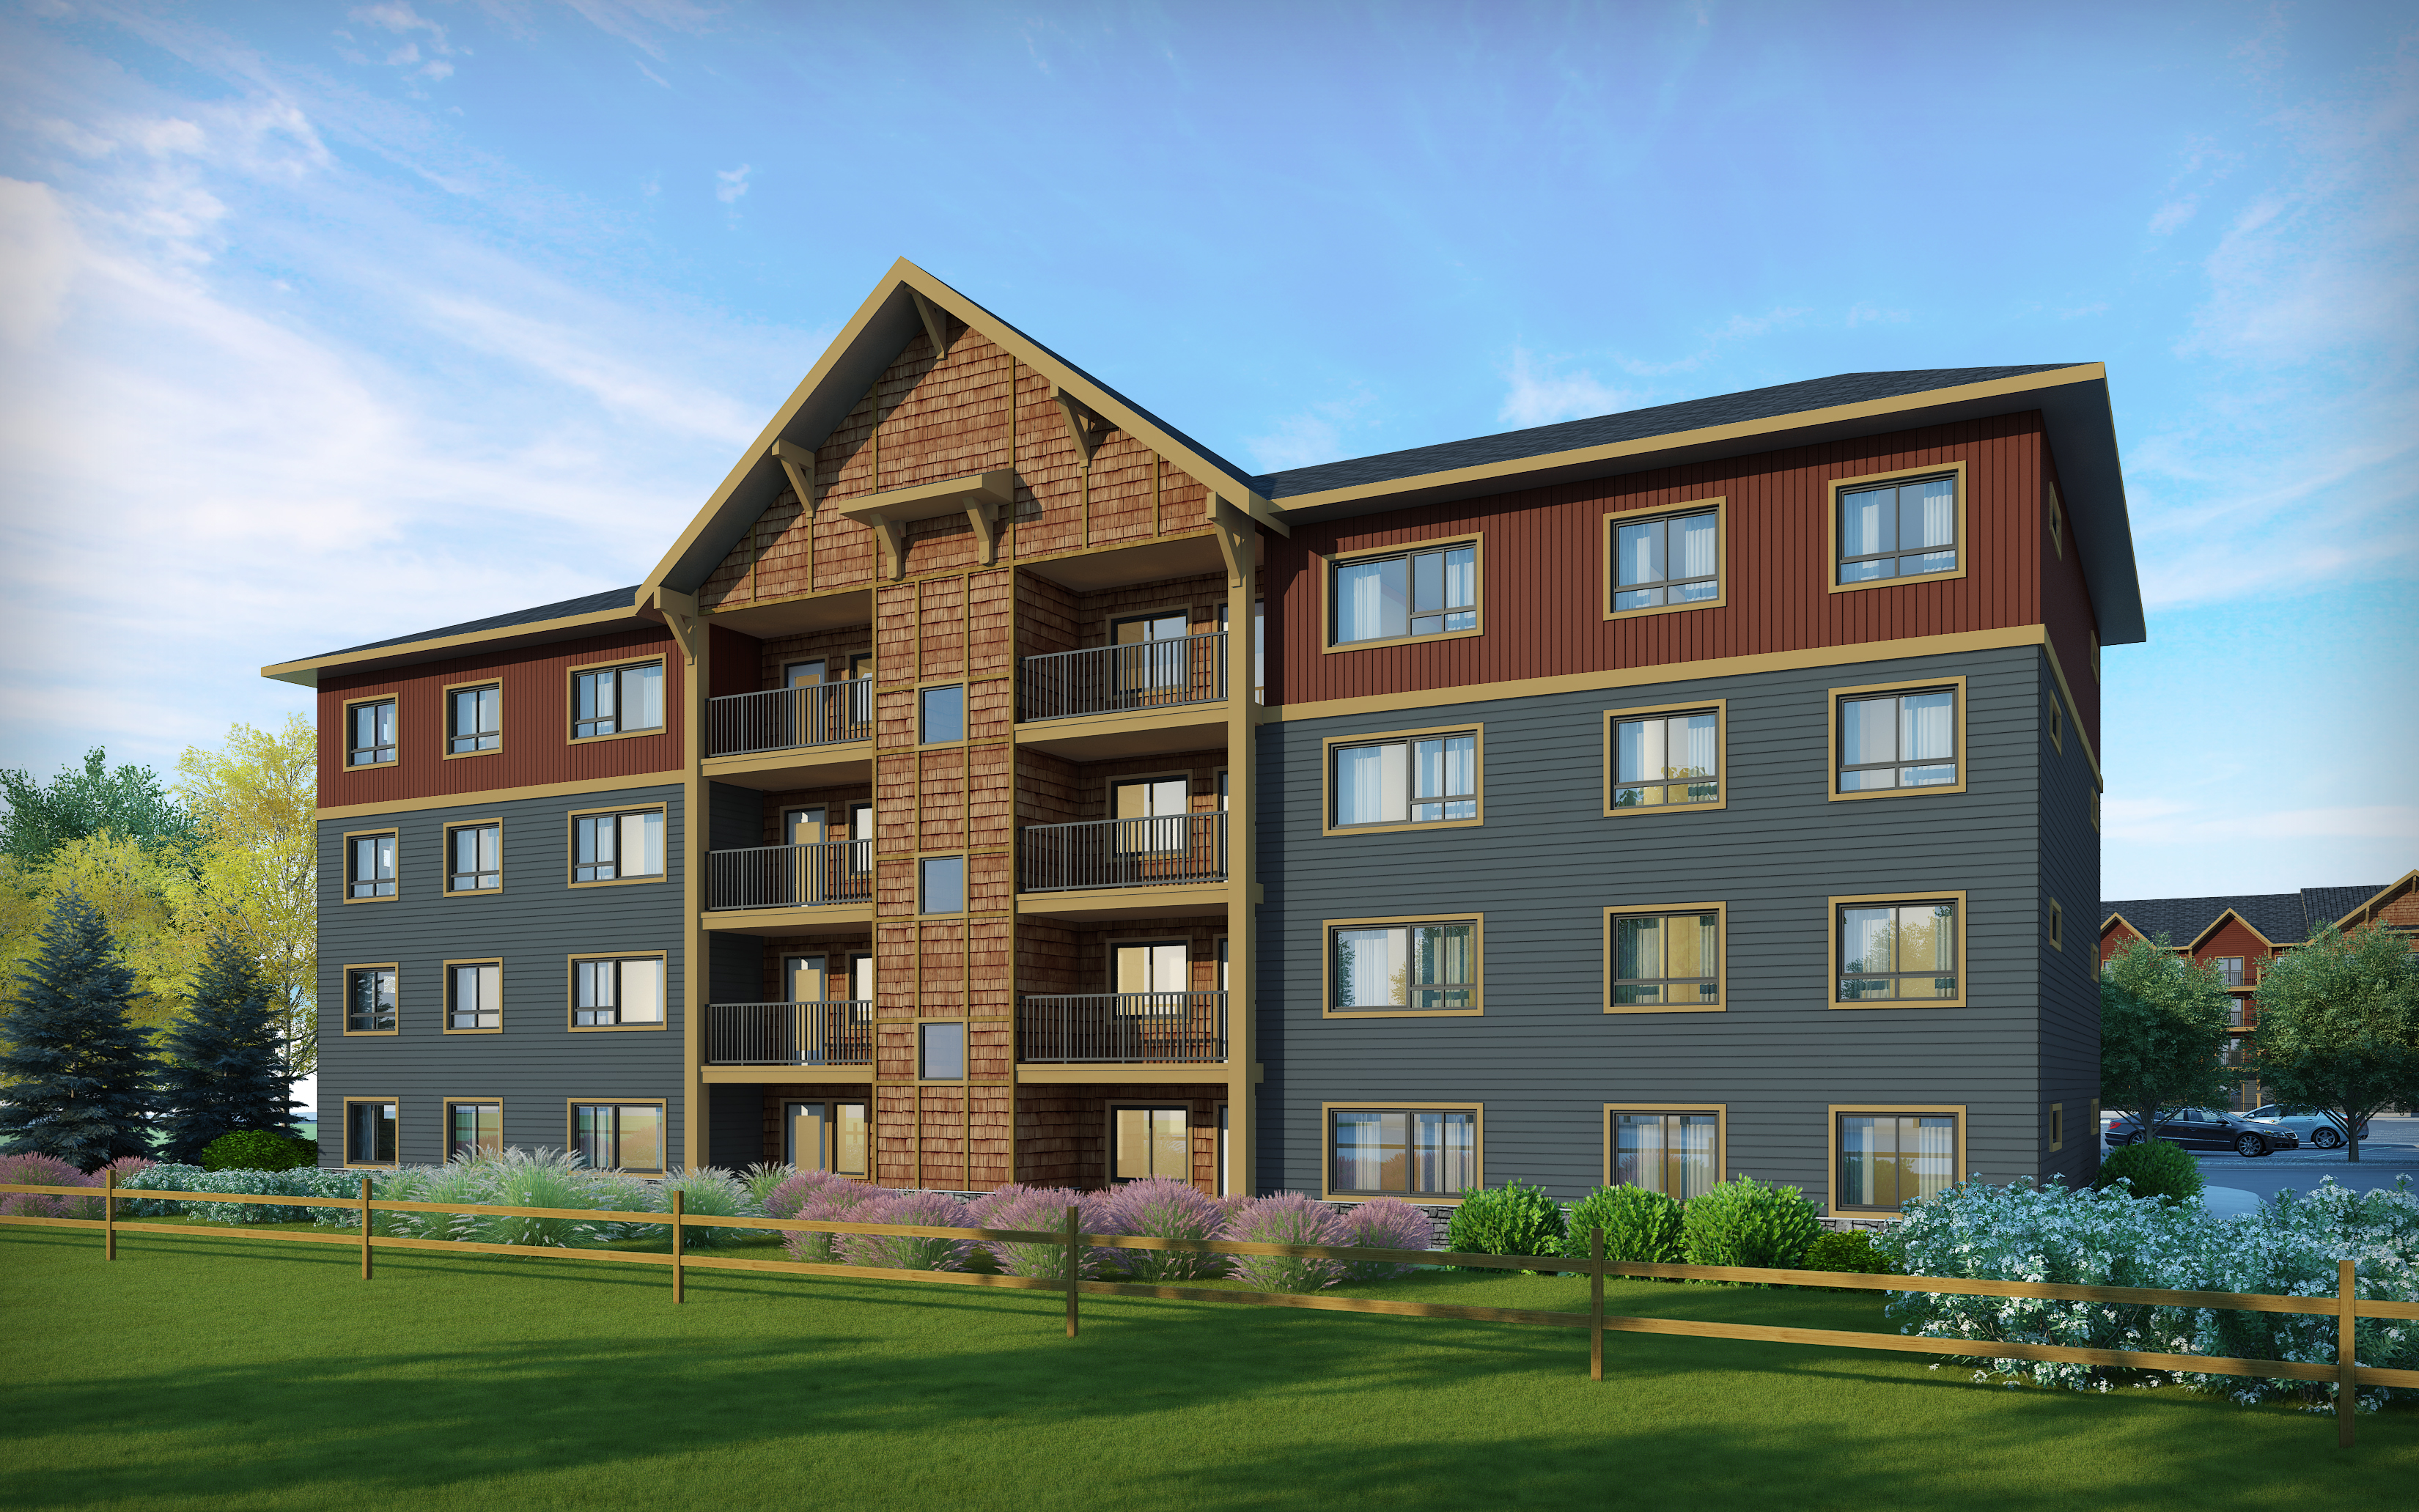 140 New Apartments for Rent in CanmoreCanmore Apartments for Rent ComingSeptember 2018!